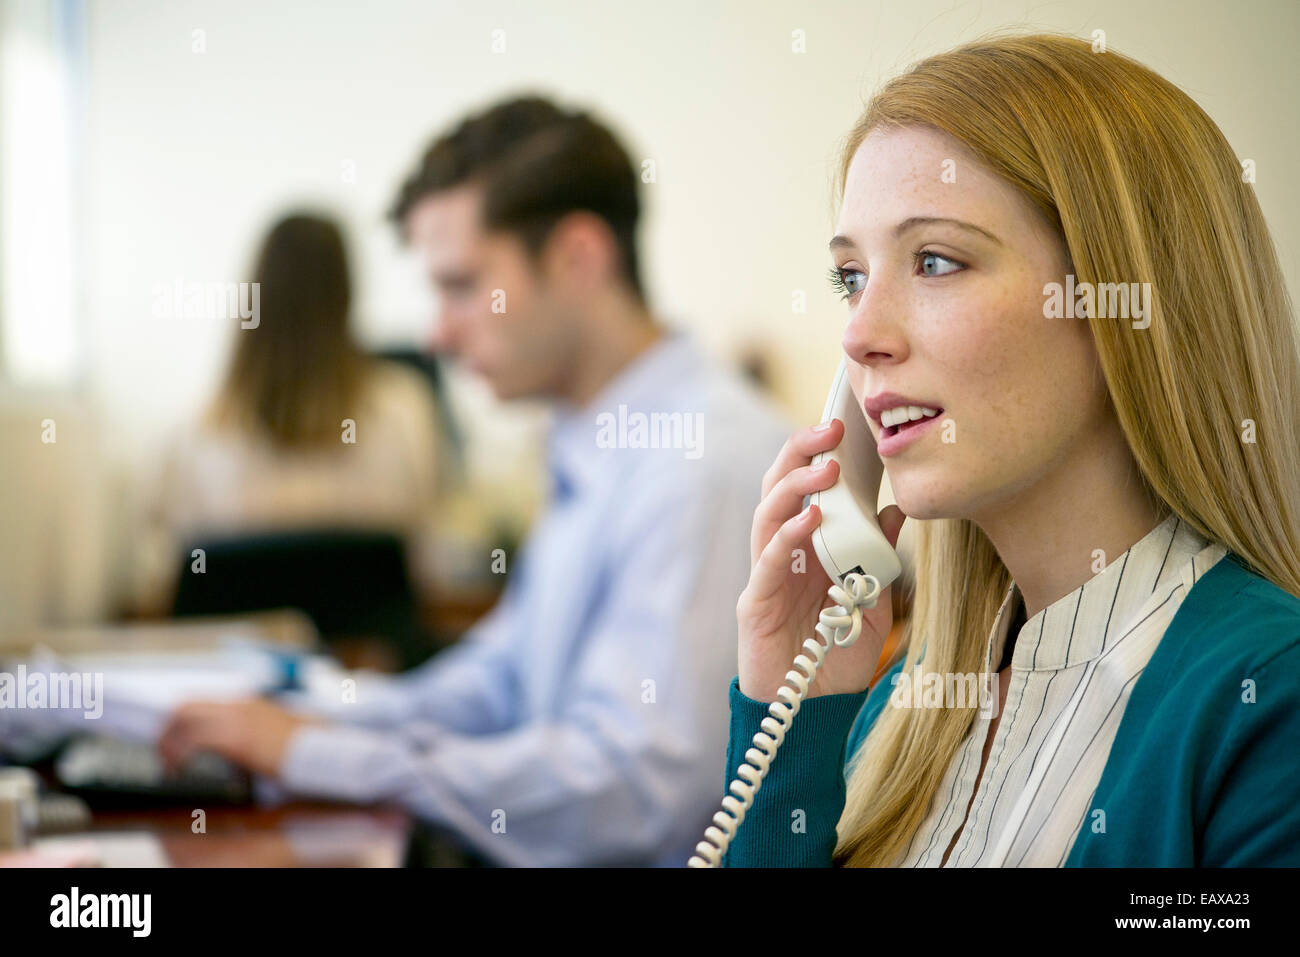 Woman using landline phone in office Stock Photo